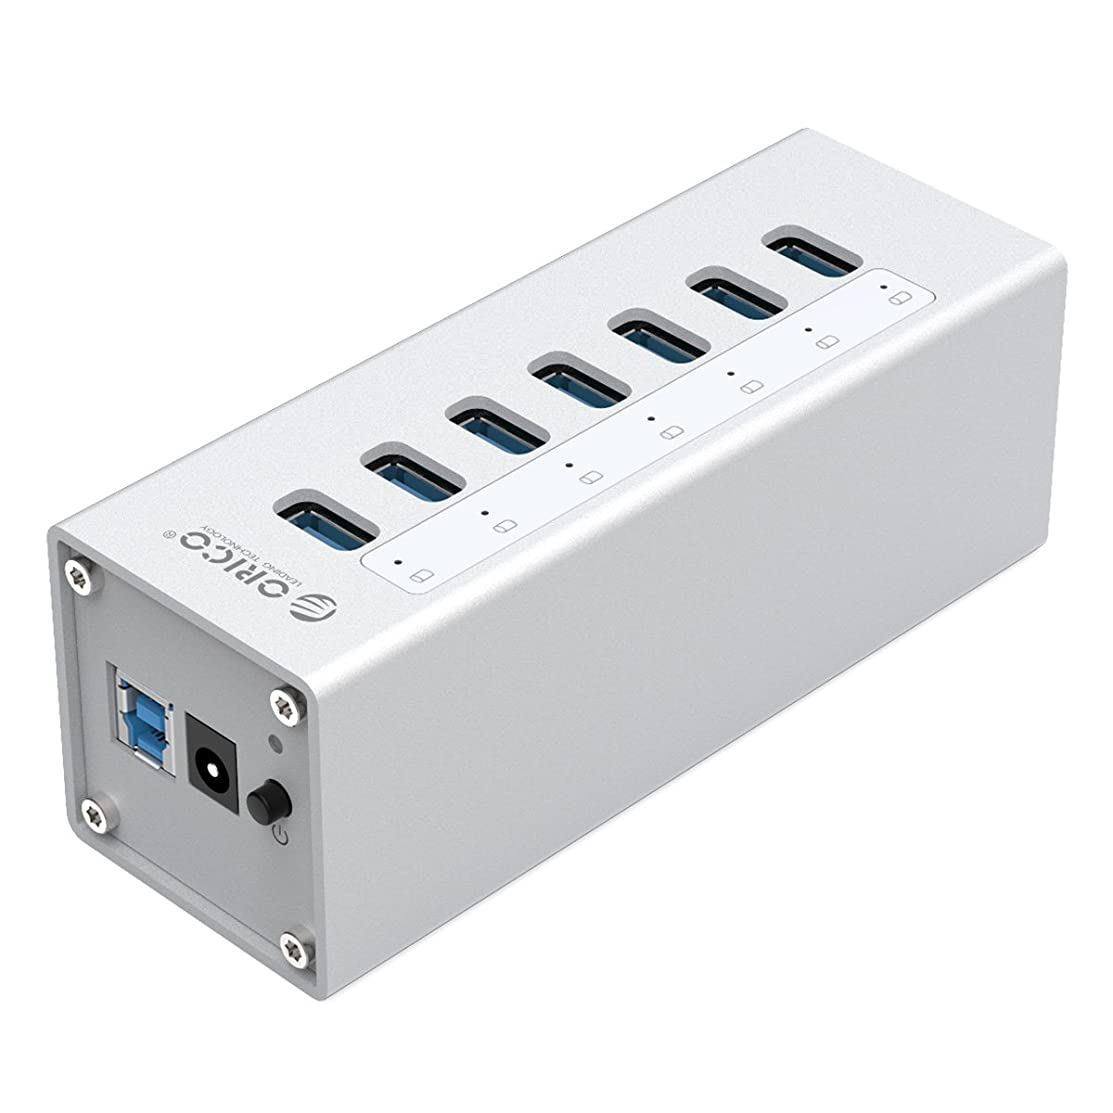 ORICO 7 Port Aluminum USB 3.0 HUB with 12V2.5A Power Adapter and 3.3Ft. USB3.0 Date Cable - Sliver (A3H7)